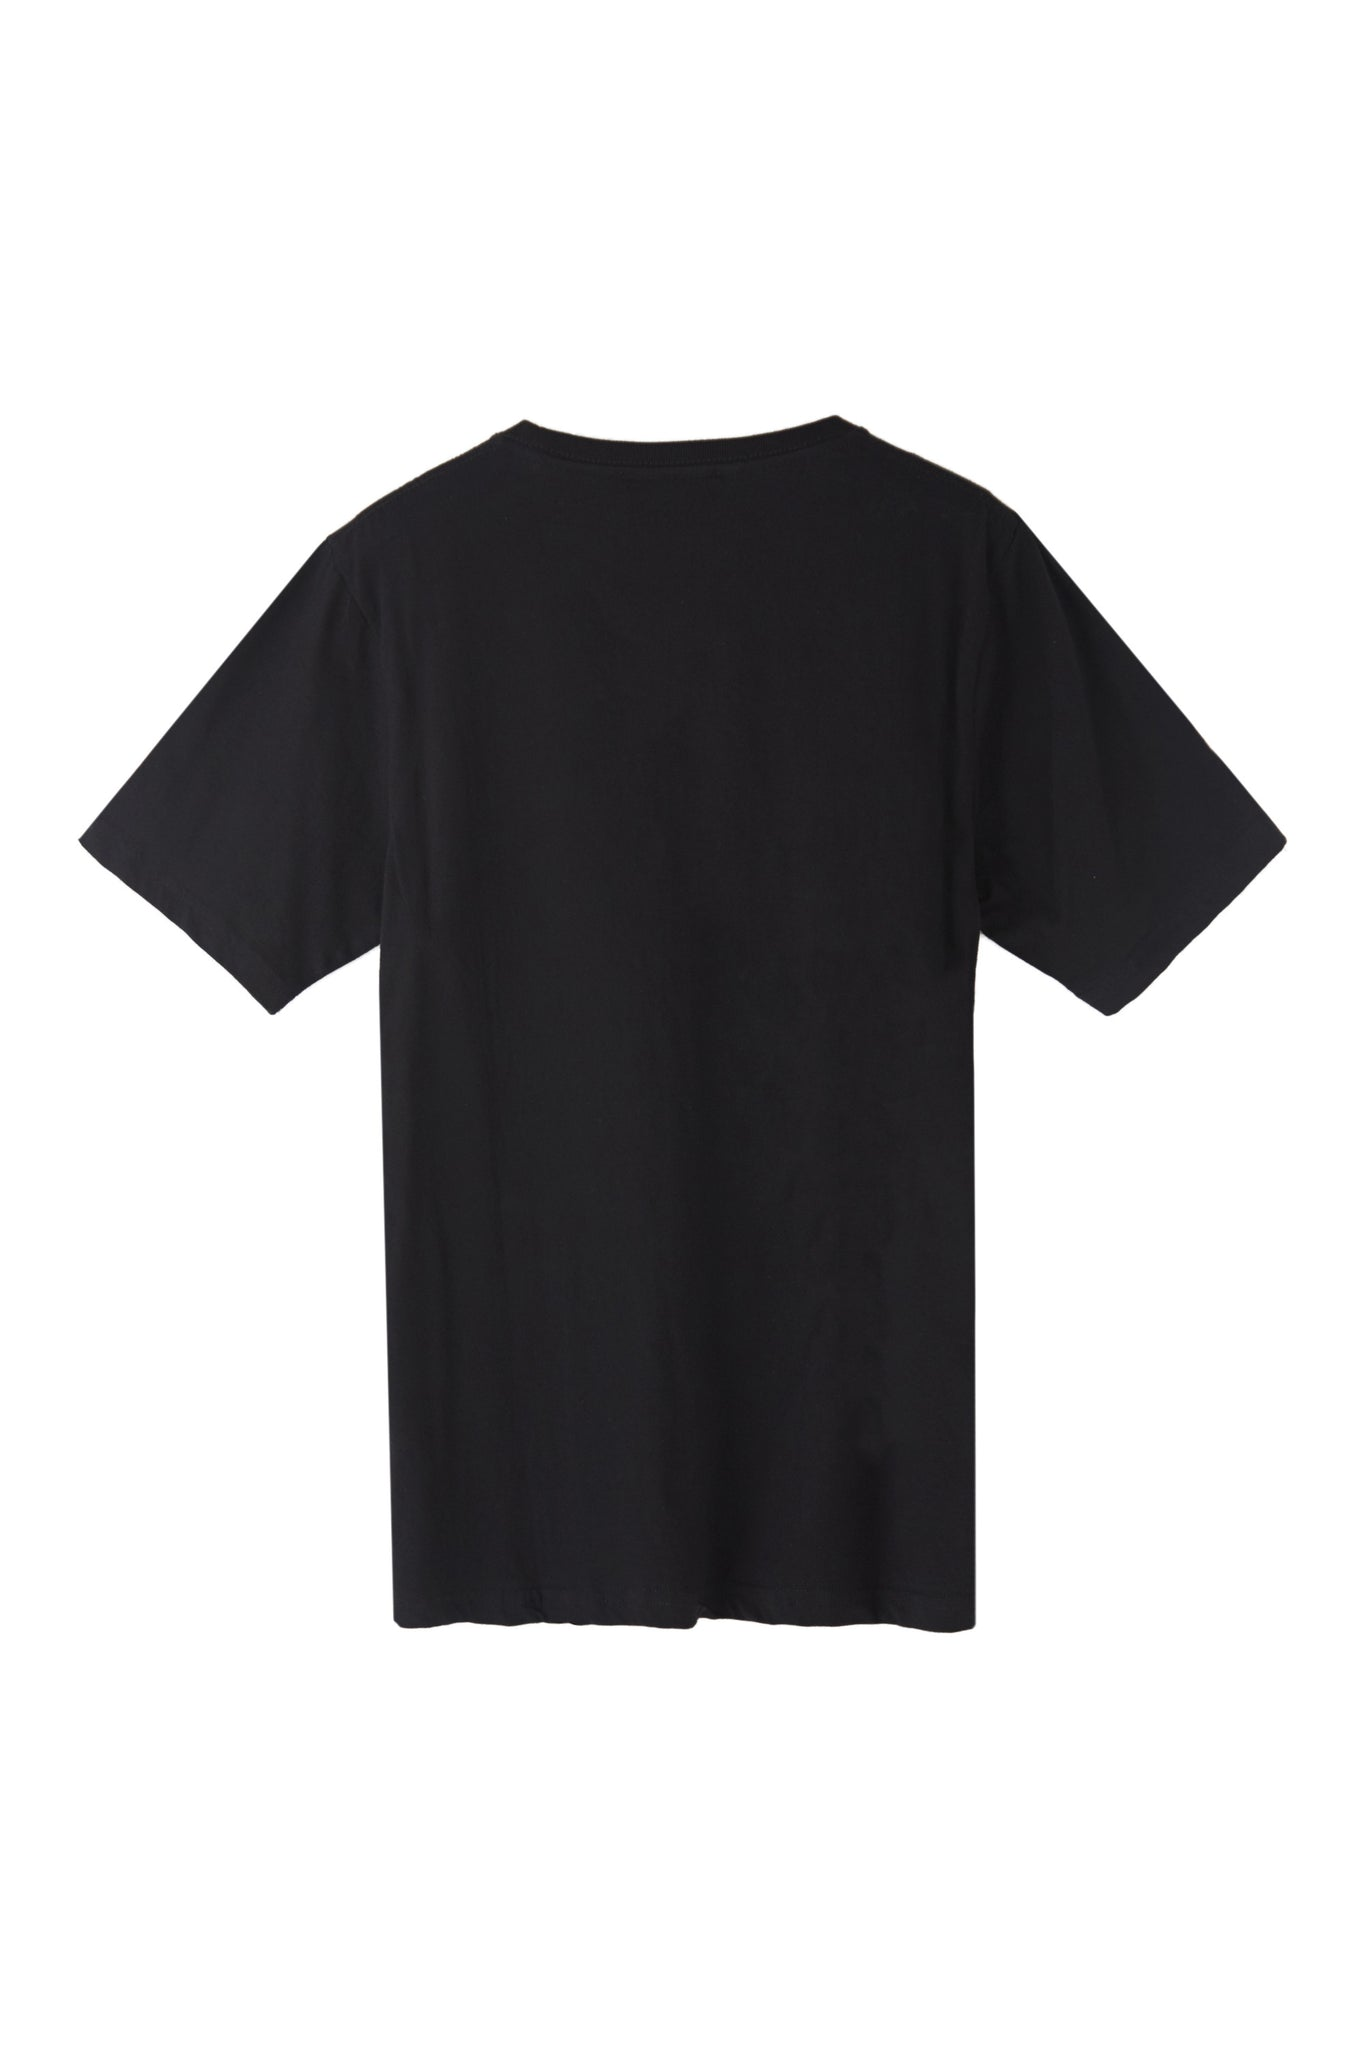 TRANSFORM BLACK T-SHIRT